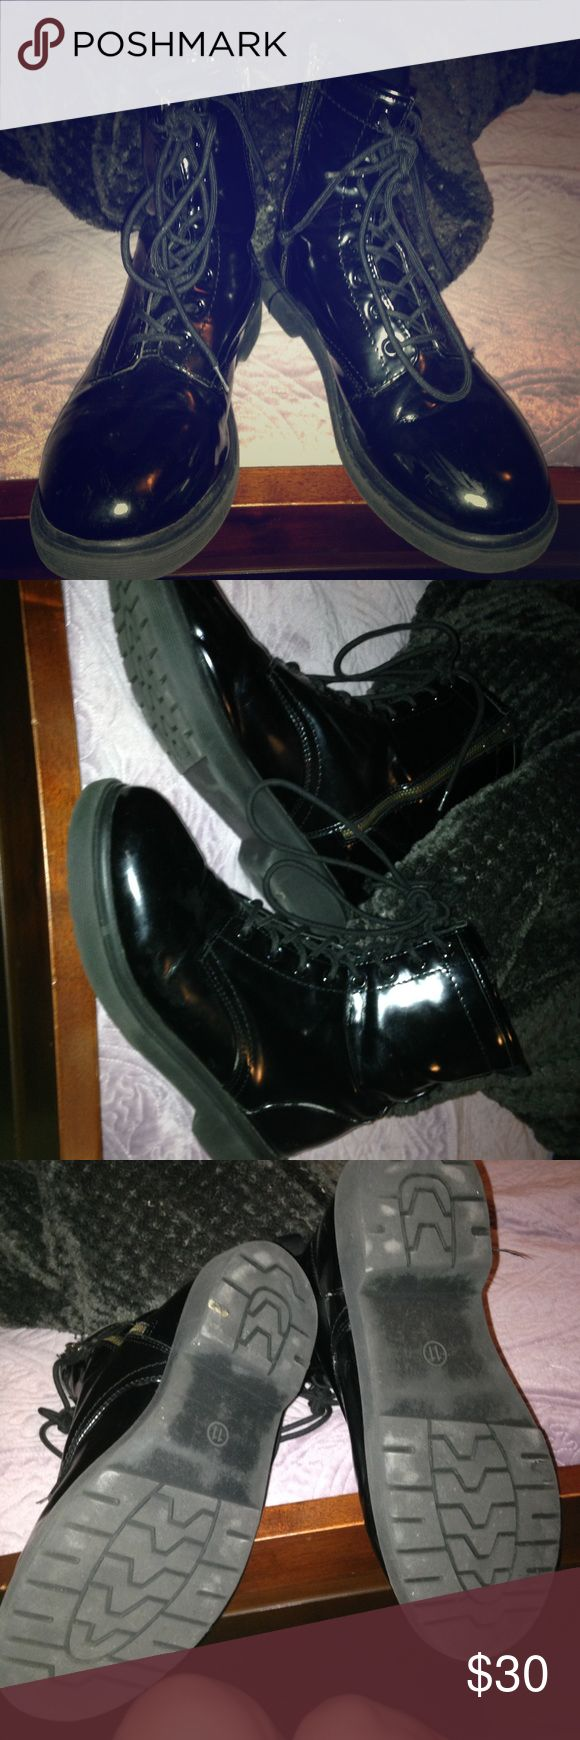 black combat boots doc martens look alikes size 11 in great used condition! Bought from target are really good quality, very smimilar to actual docs the feel and look, people always thought they were docs when I wore em! Dr. Martens Shoes Lace Up Boots